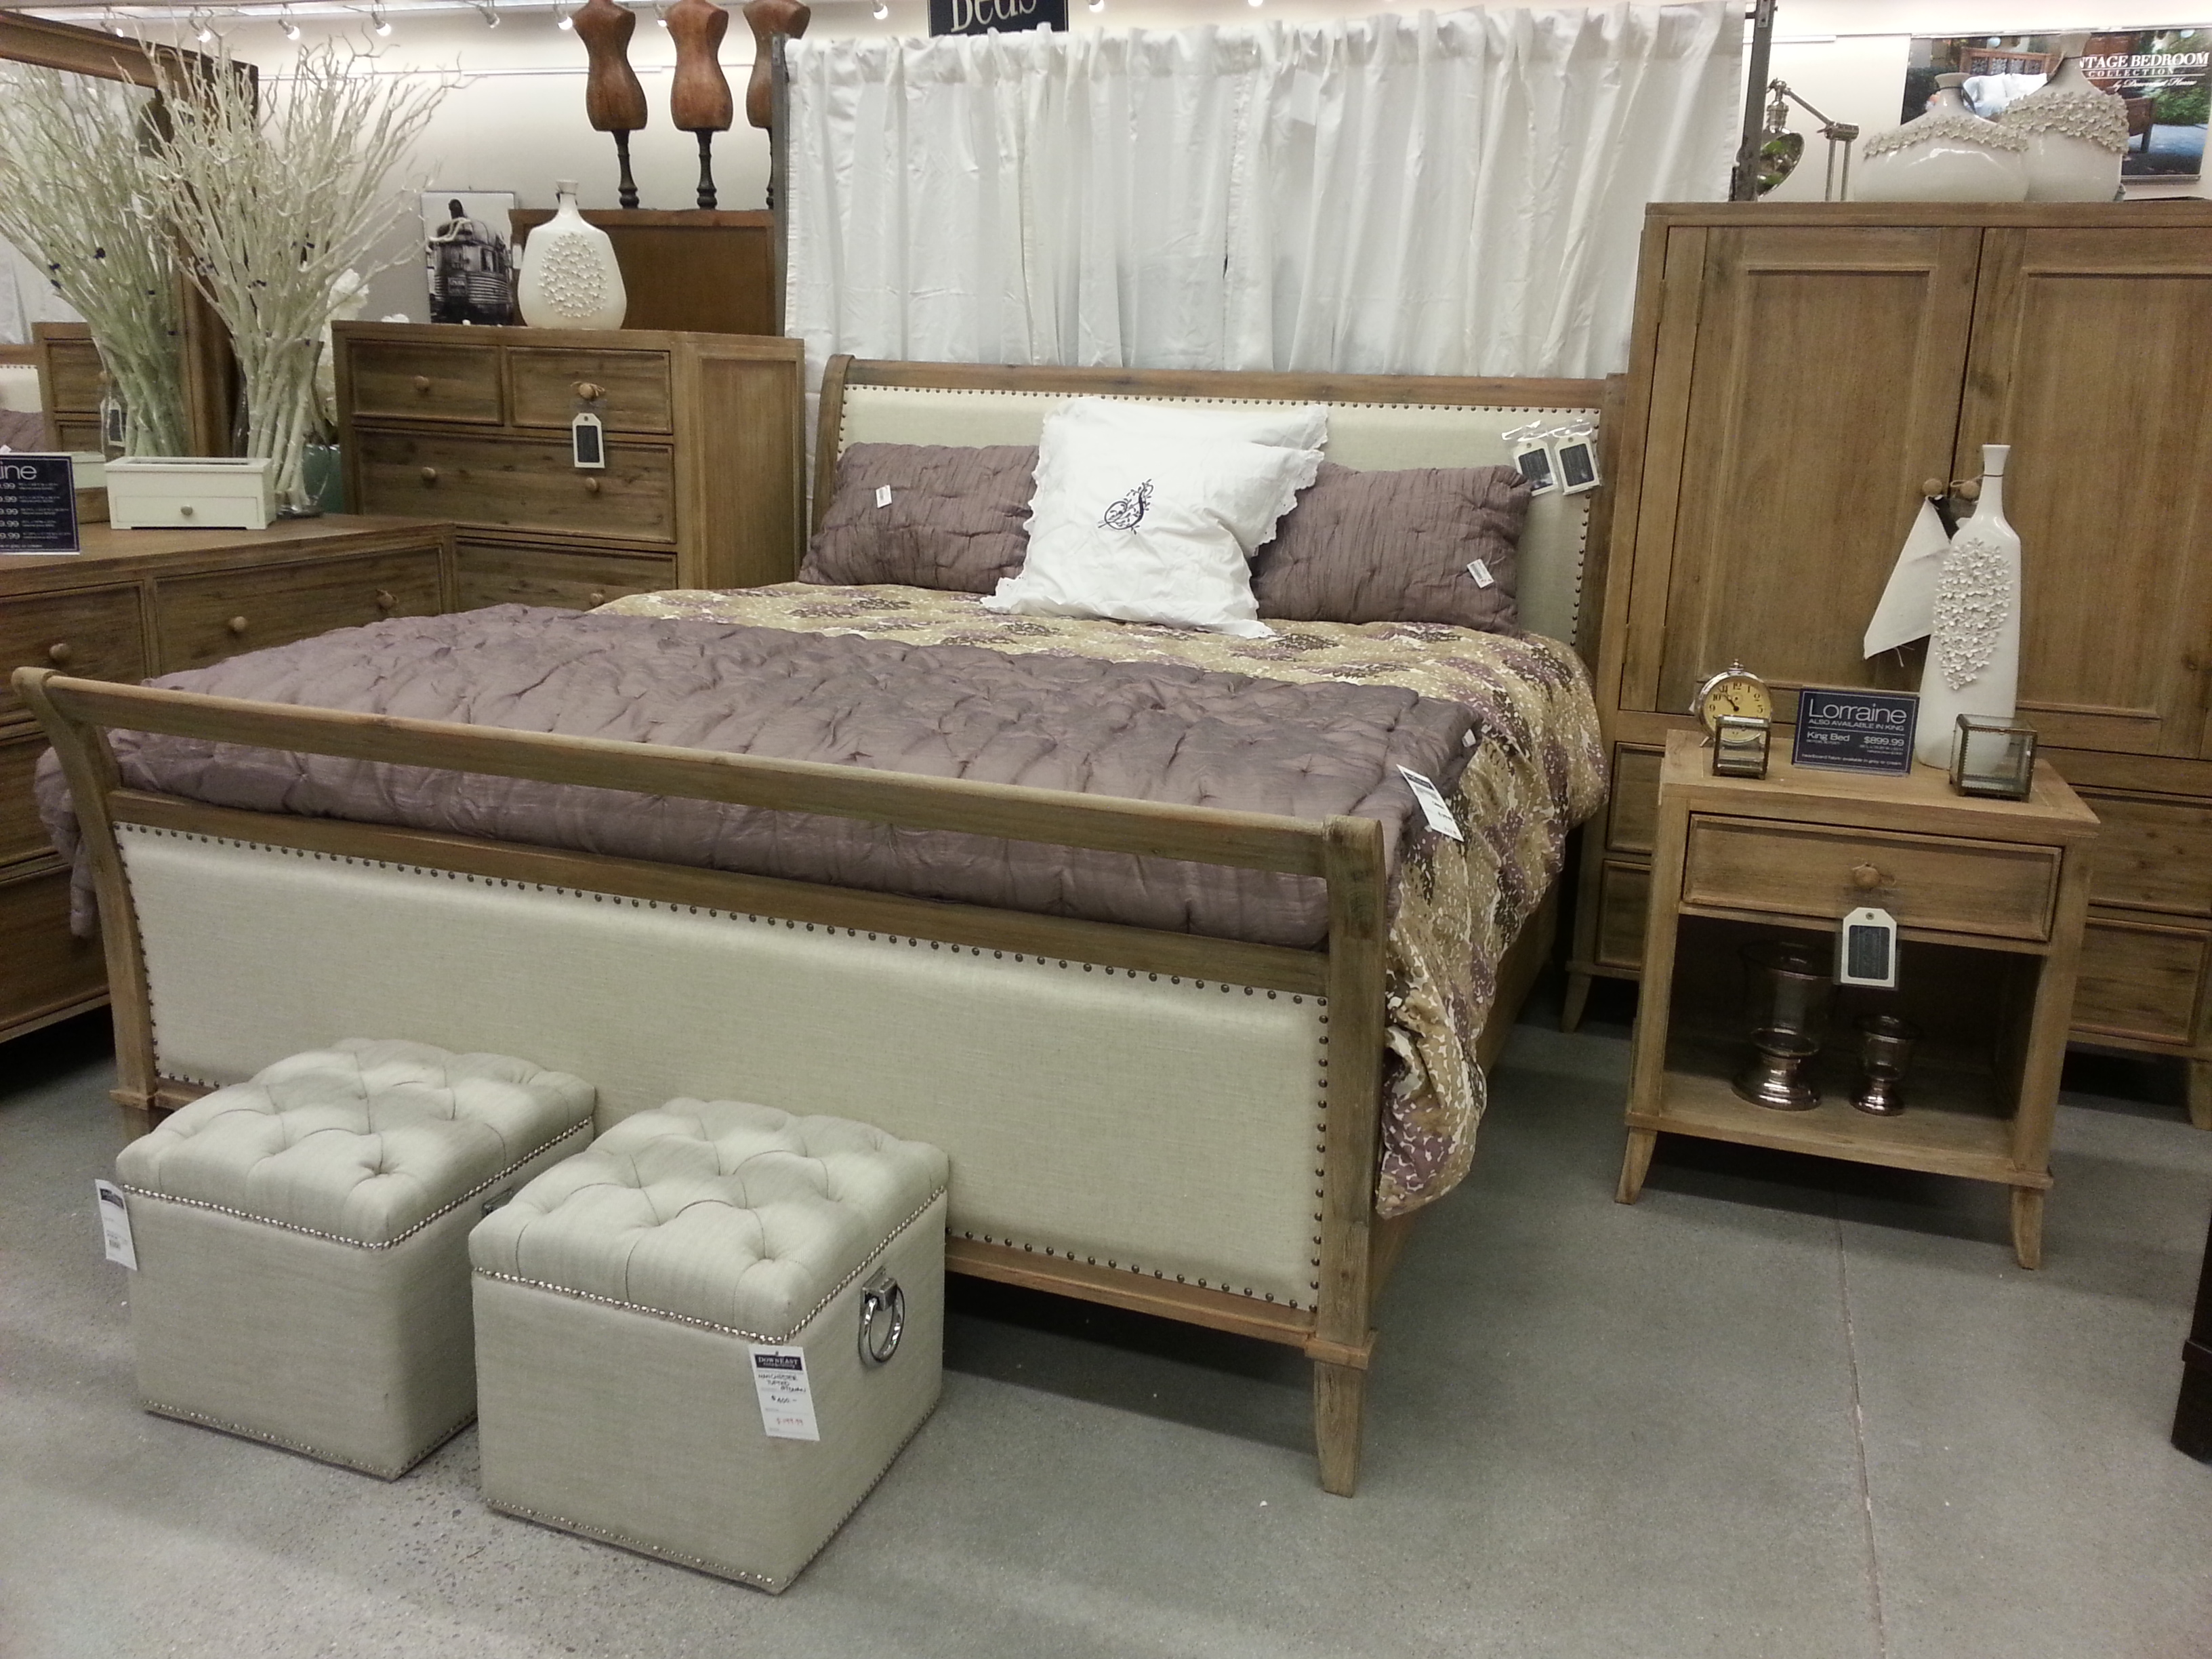 DownEast Home & Clothing Opens in Henderson